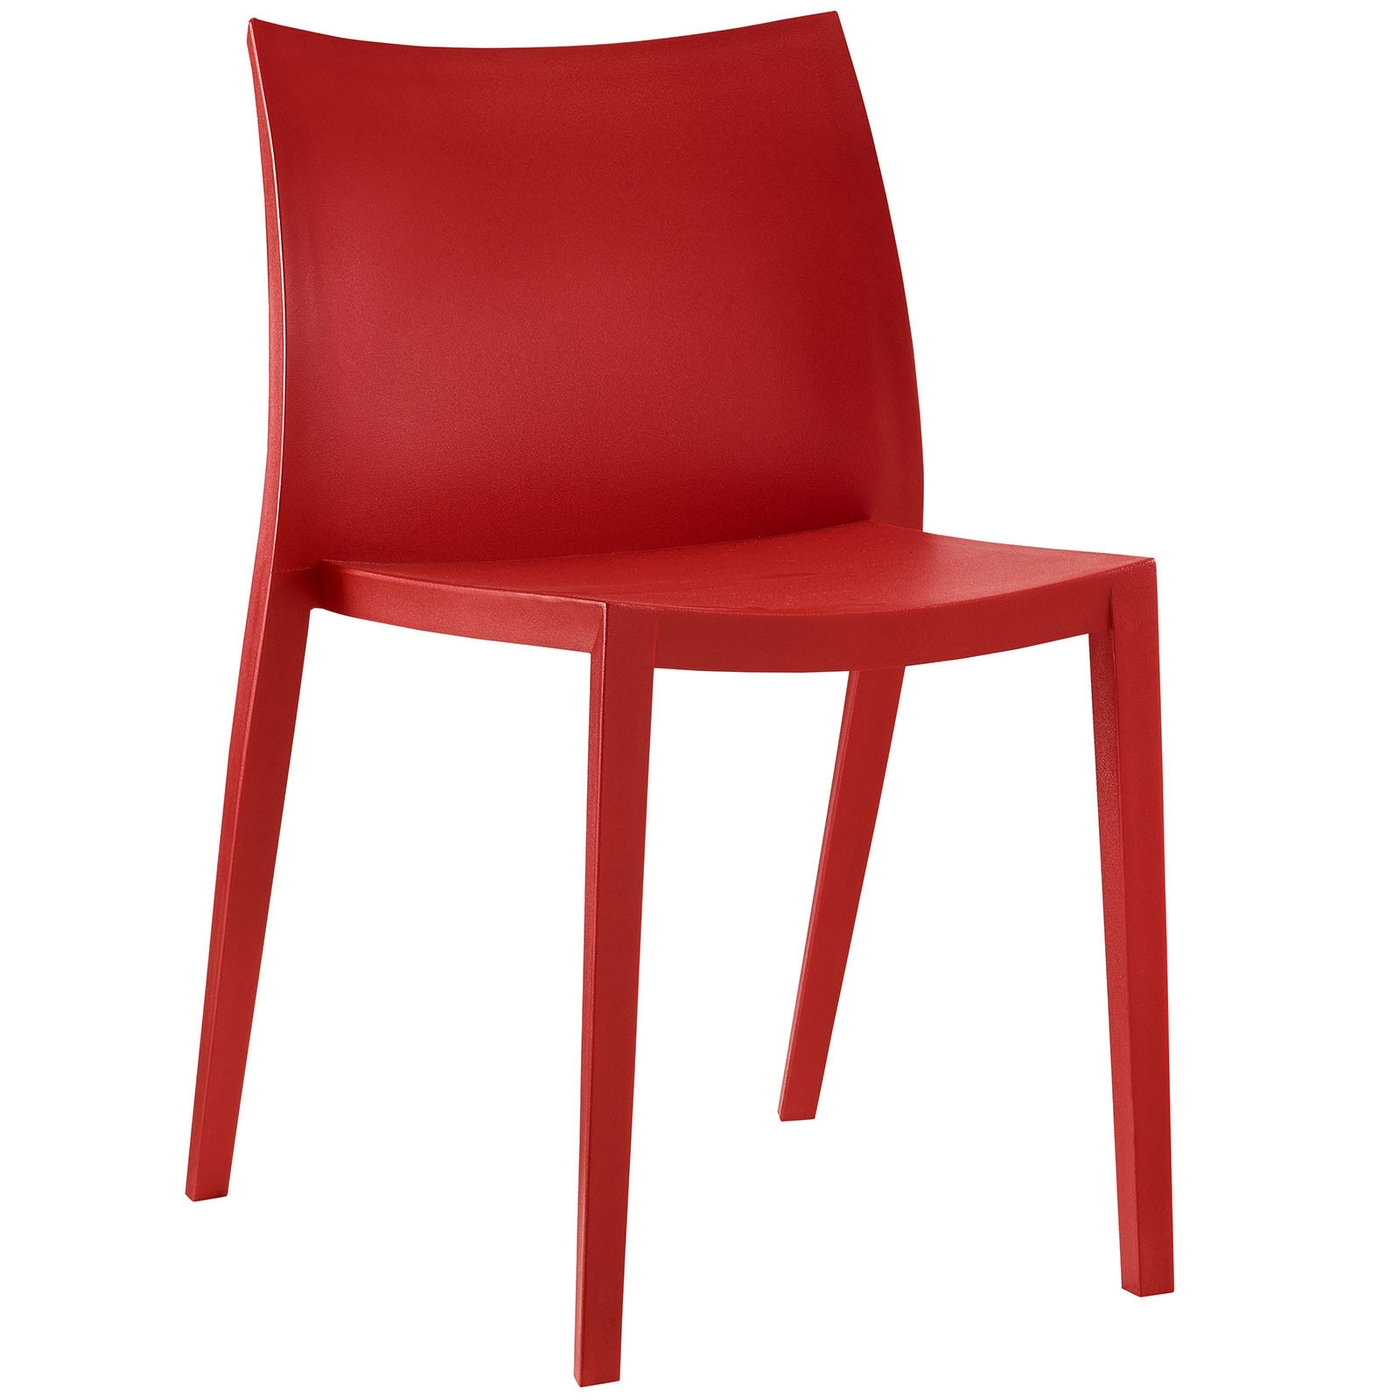 gallant contemporary plastic dining side chair red. Black Bedroom Furniture Sets. Home Design Ideas